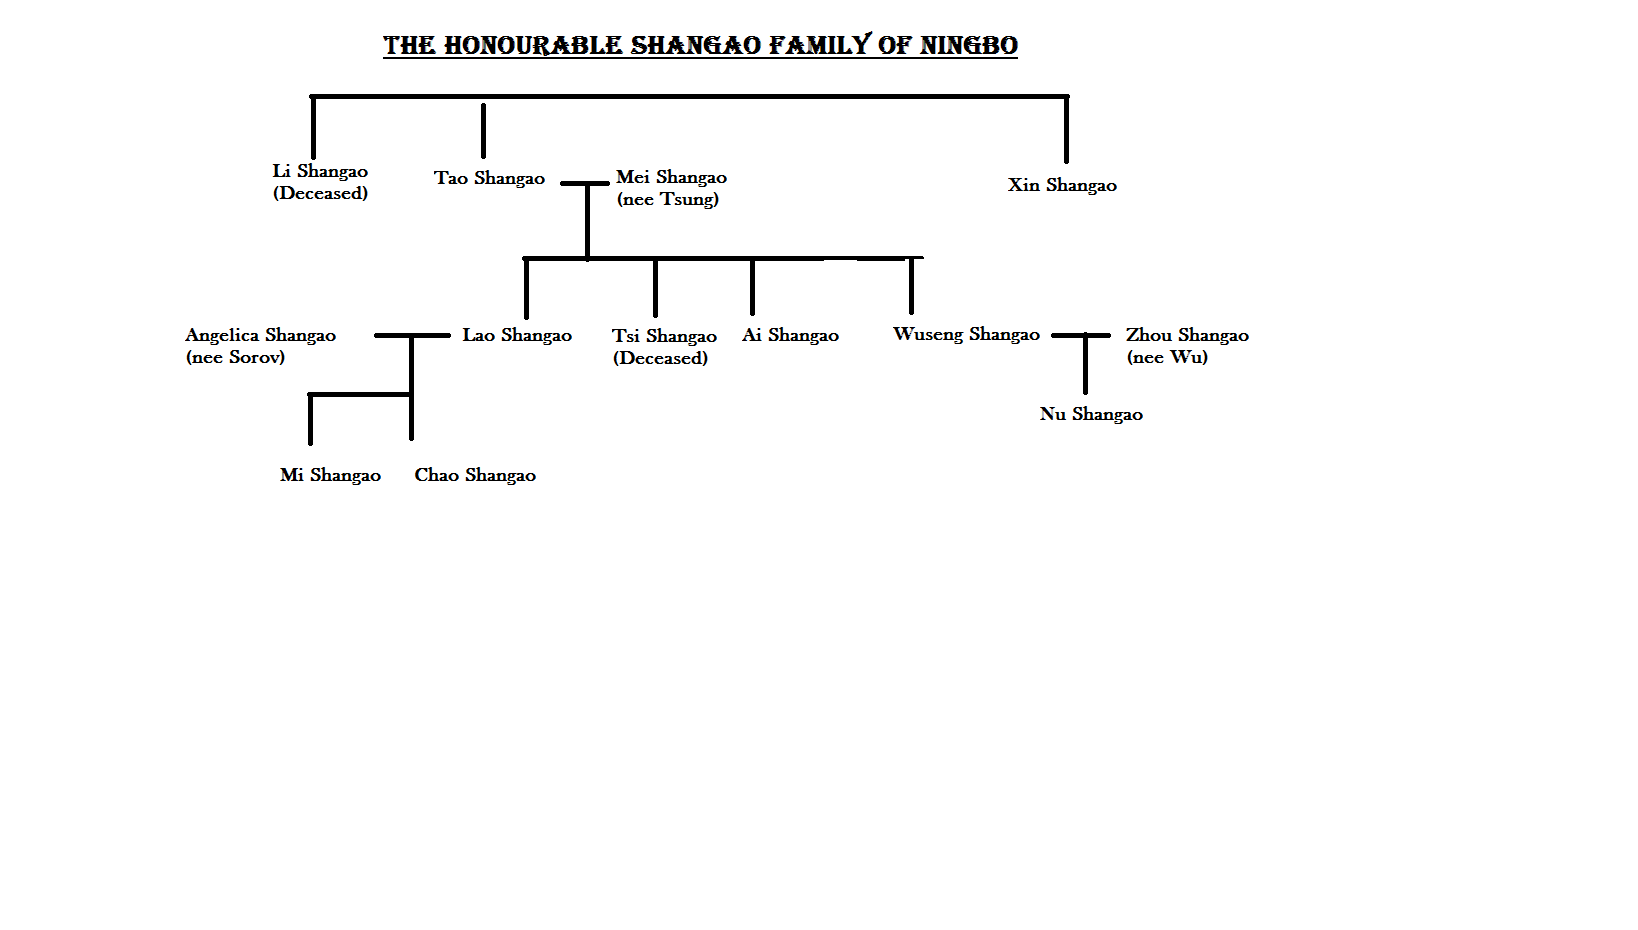 Shangao_Family_Tree.png